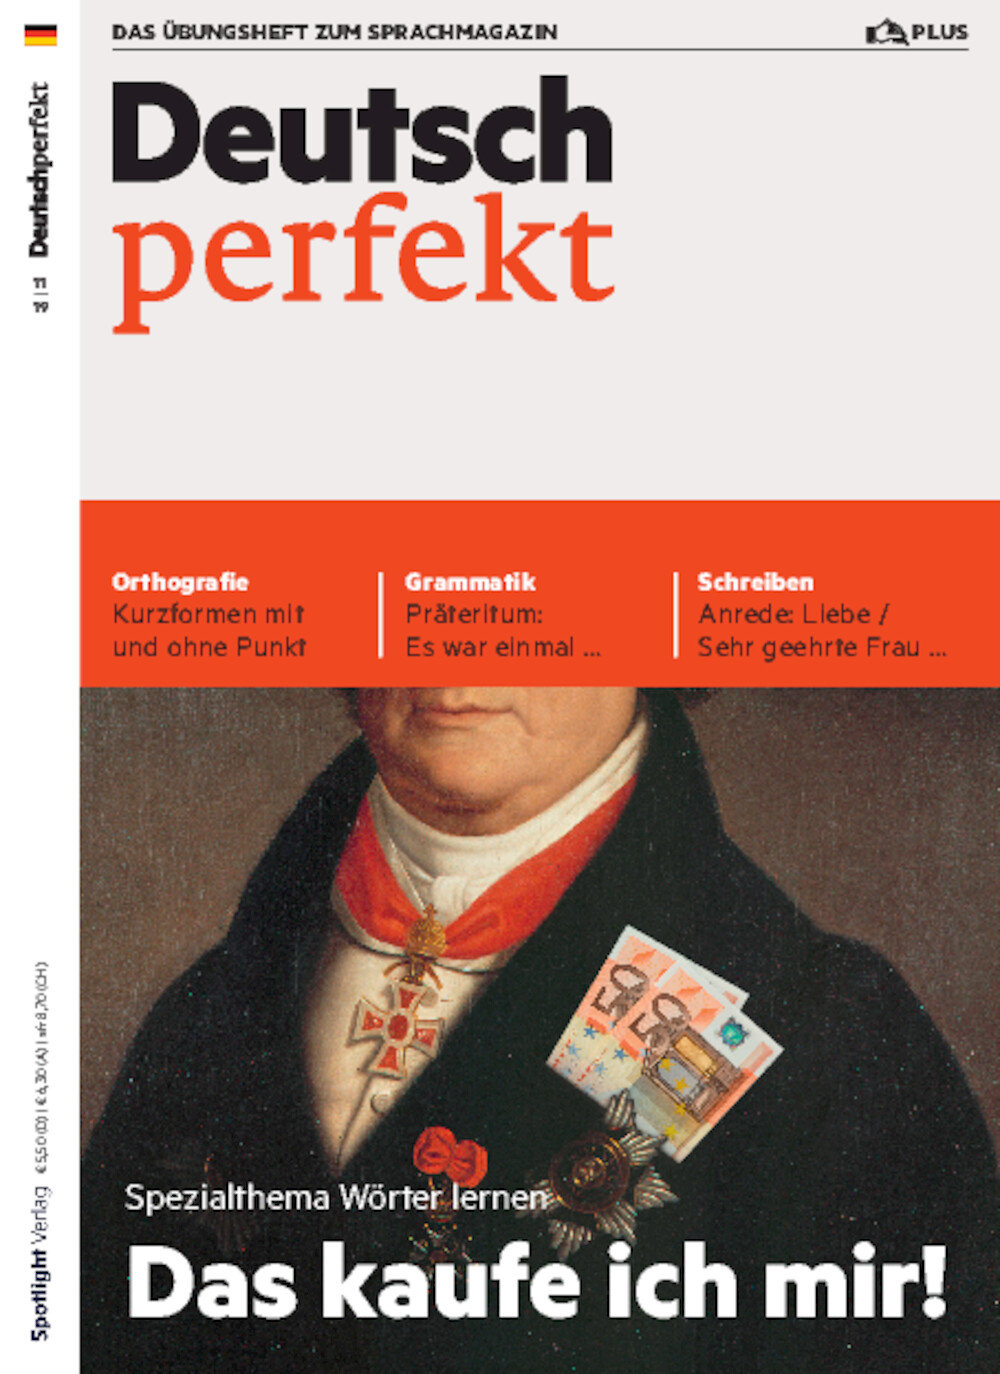 Deutsch perfekt PLUS ePaper 11/2019